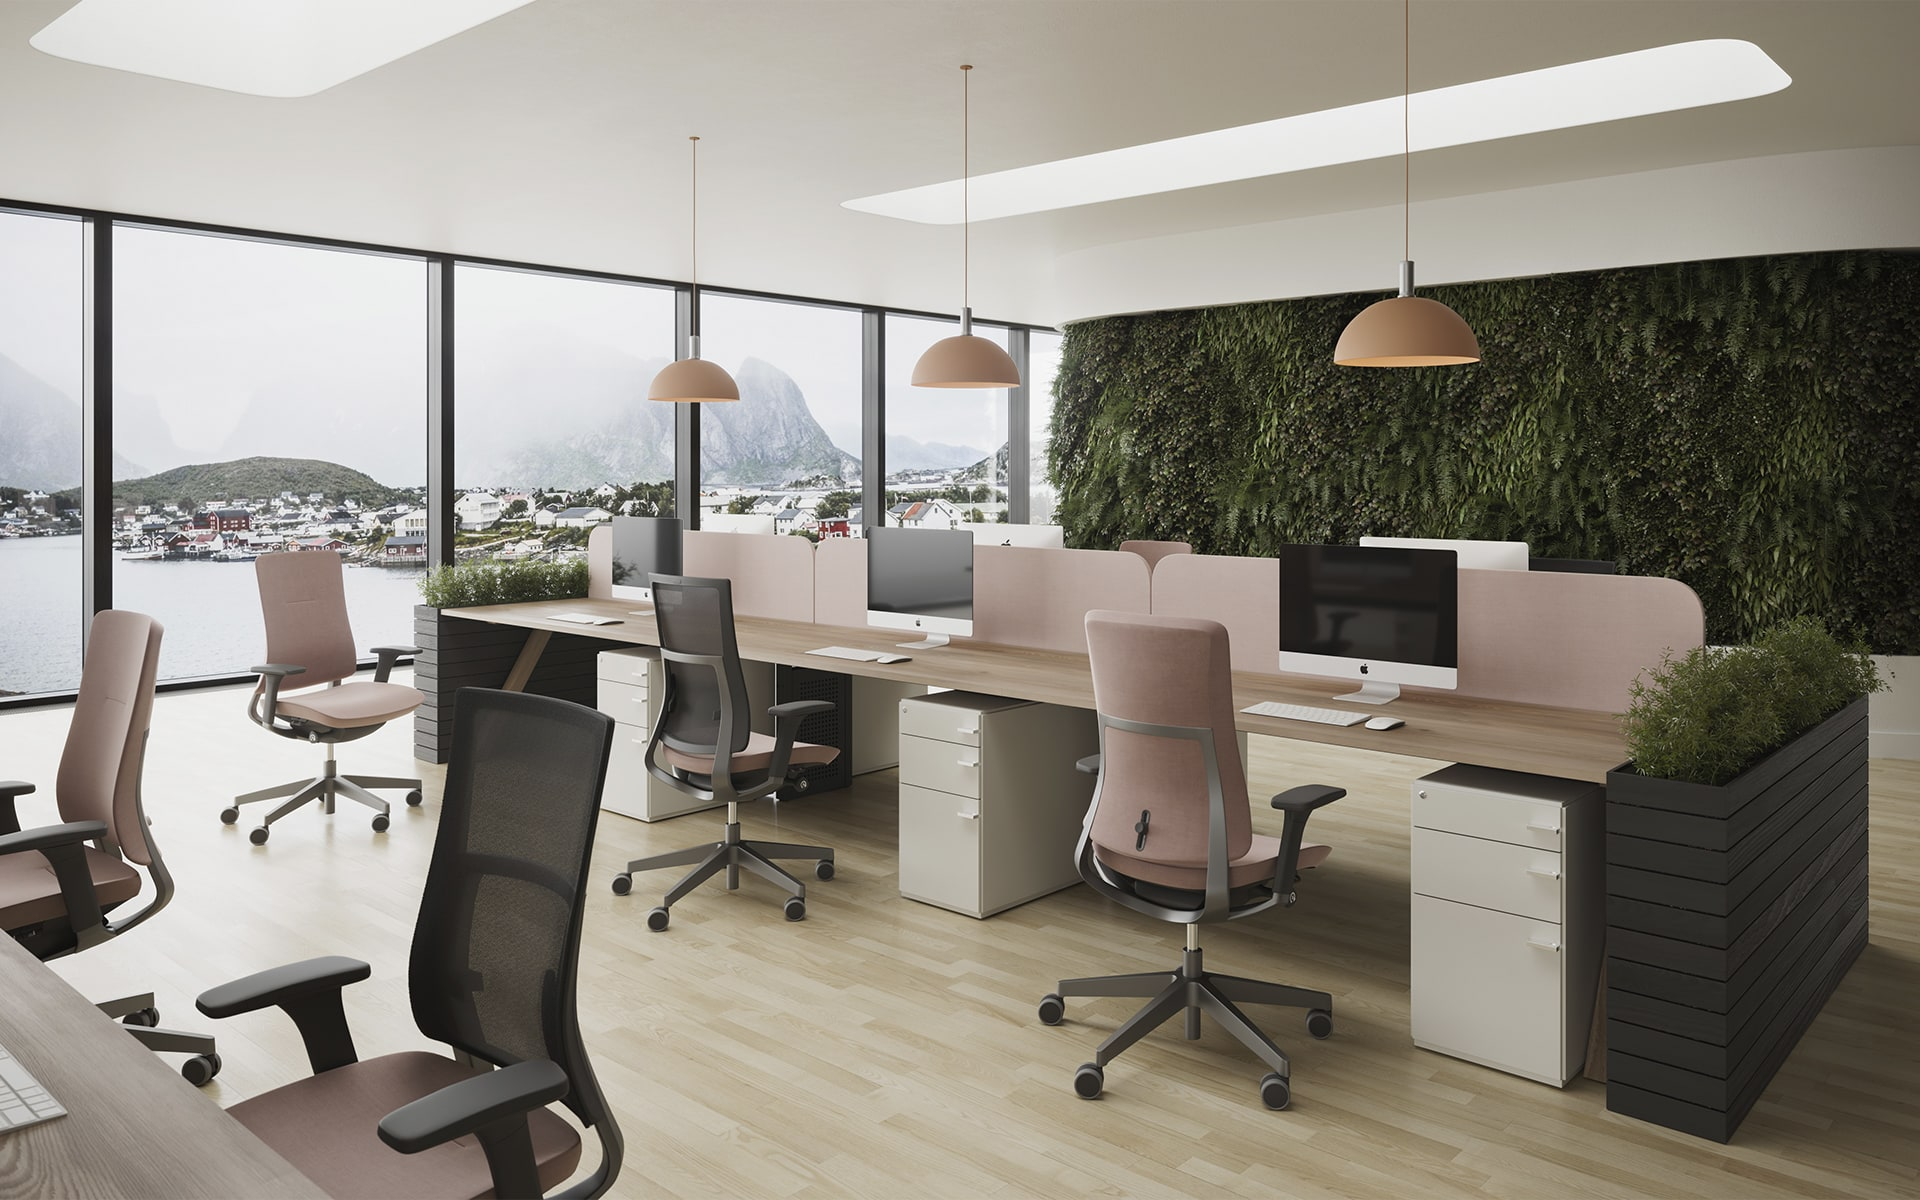 Several Profim Violle office chairs in dusky pink in stylish open space office with large window facade and view of a fjord